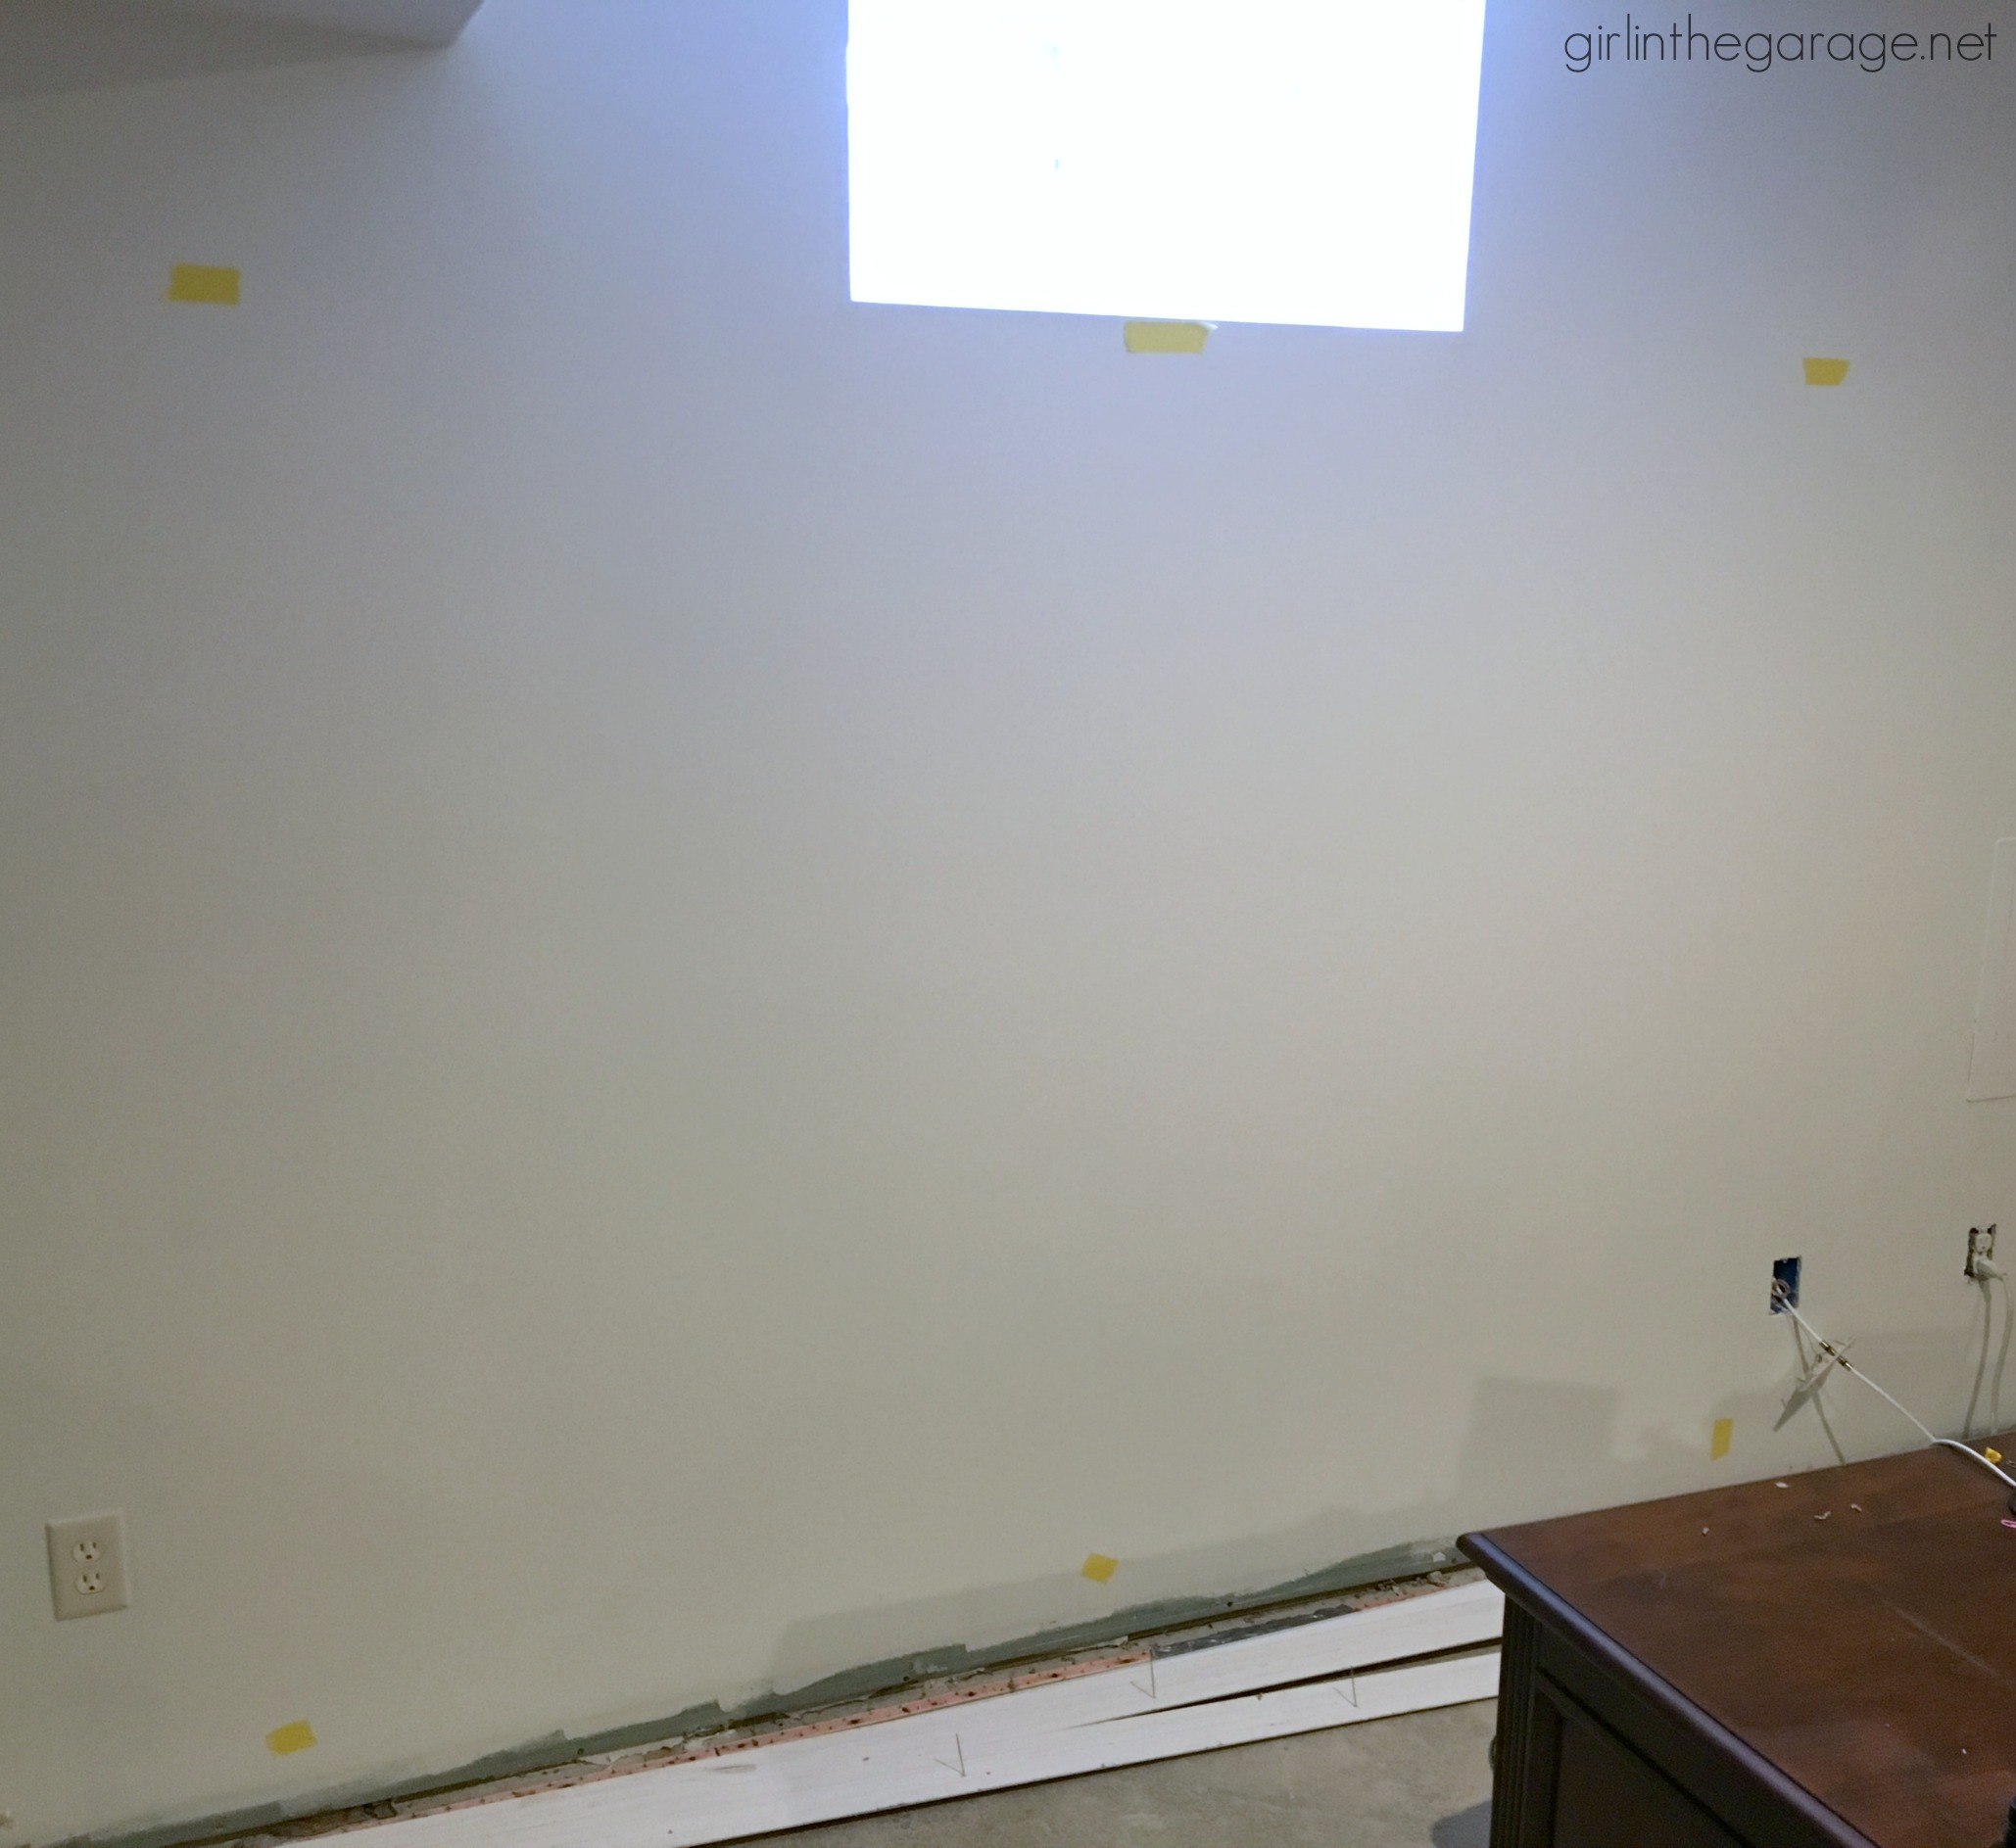 How to make a statement wall with removable wallpaper - Girl in the Garage